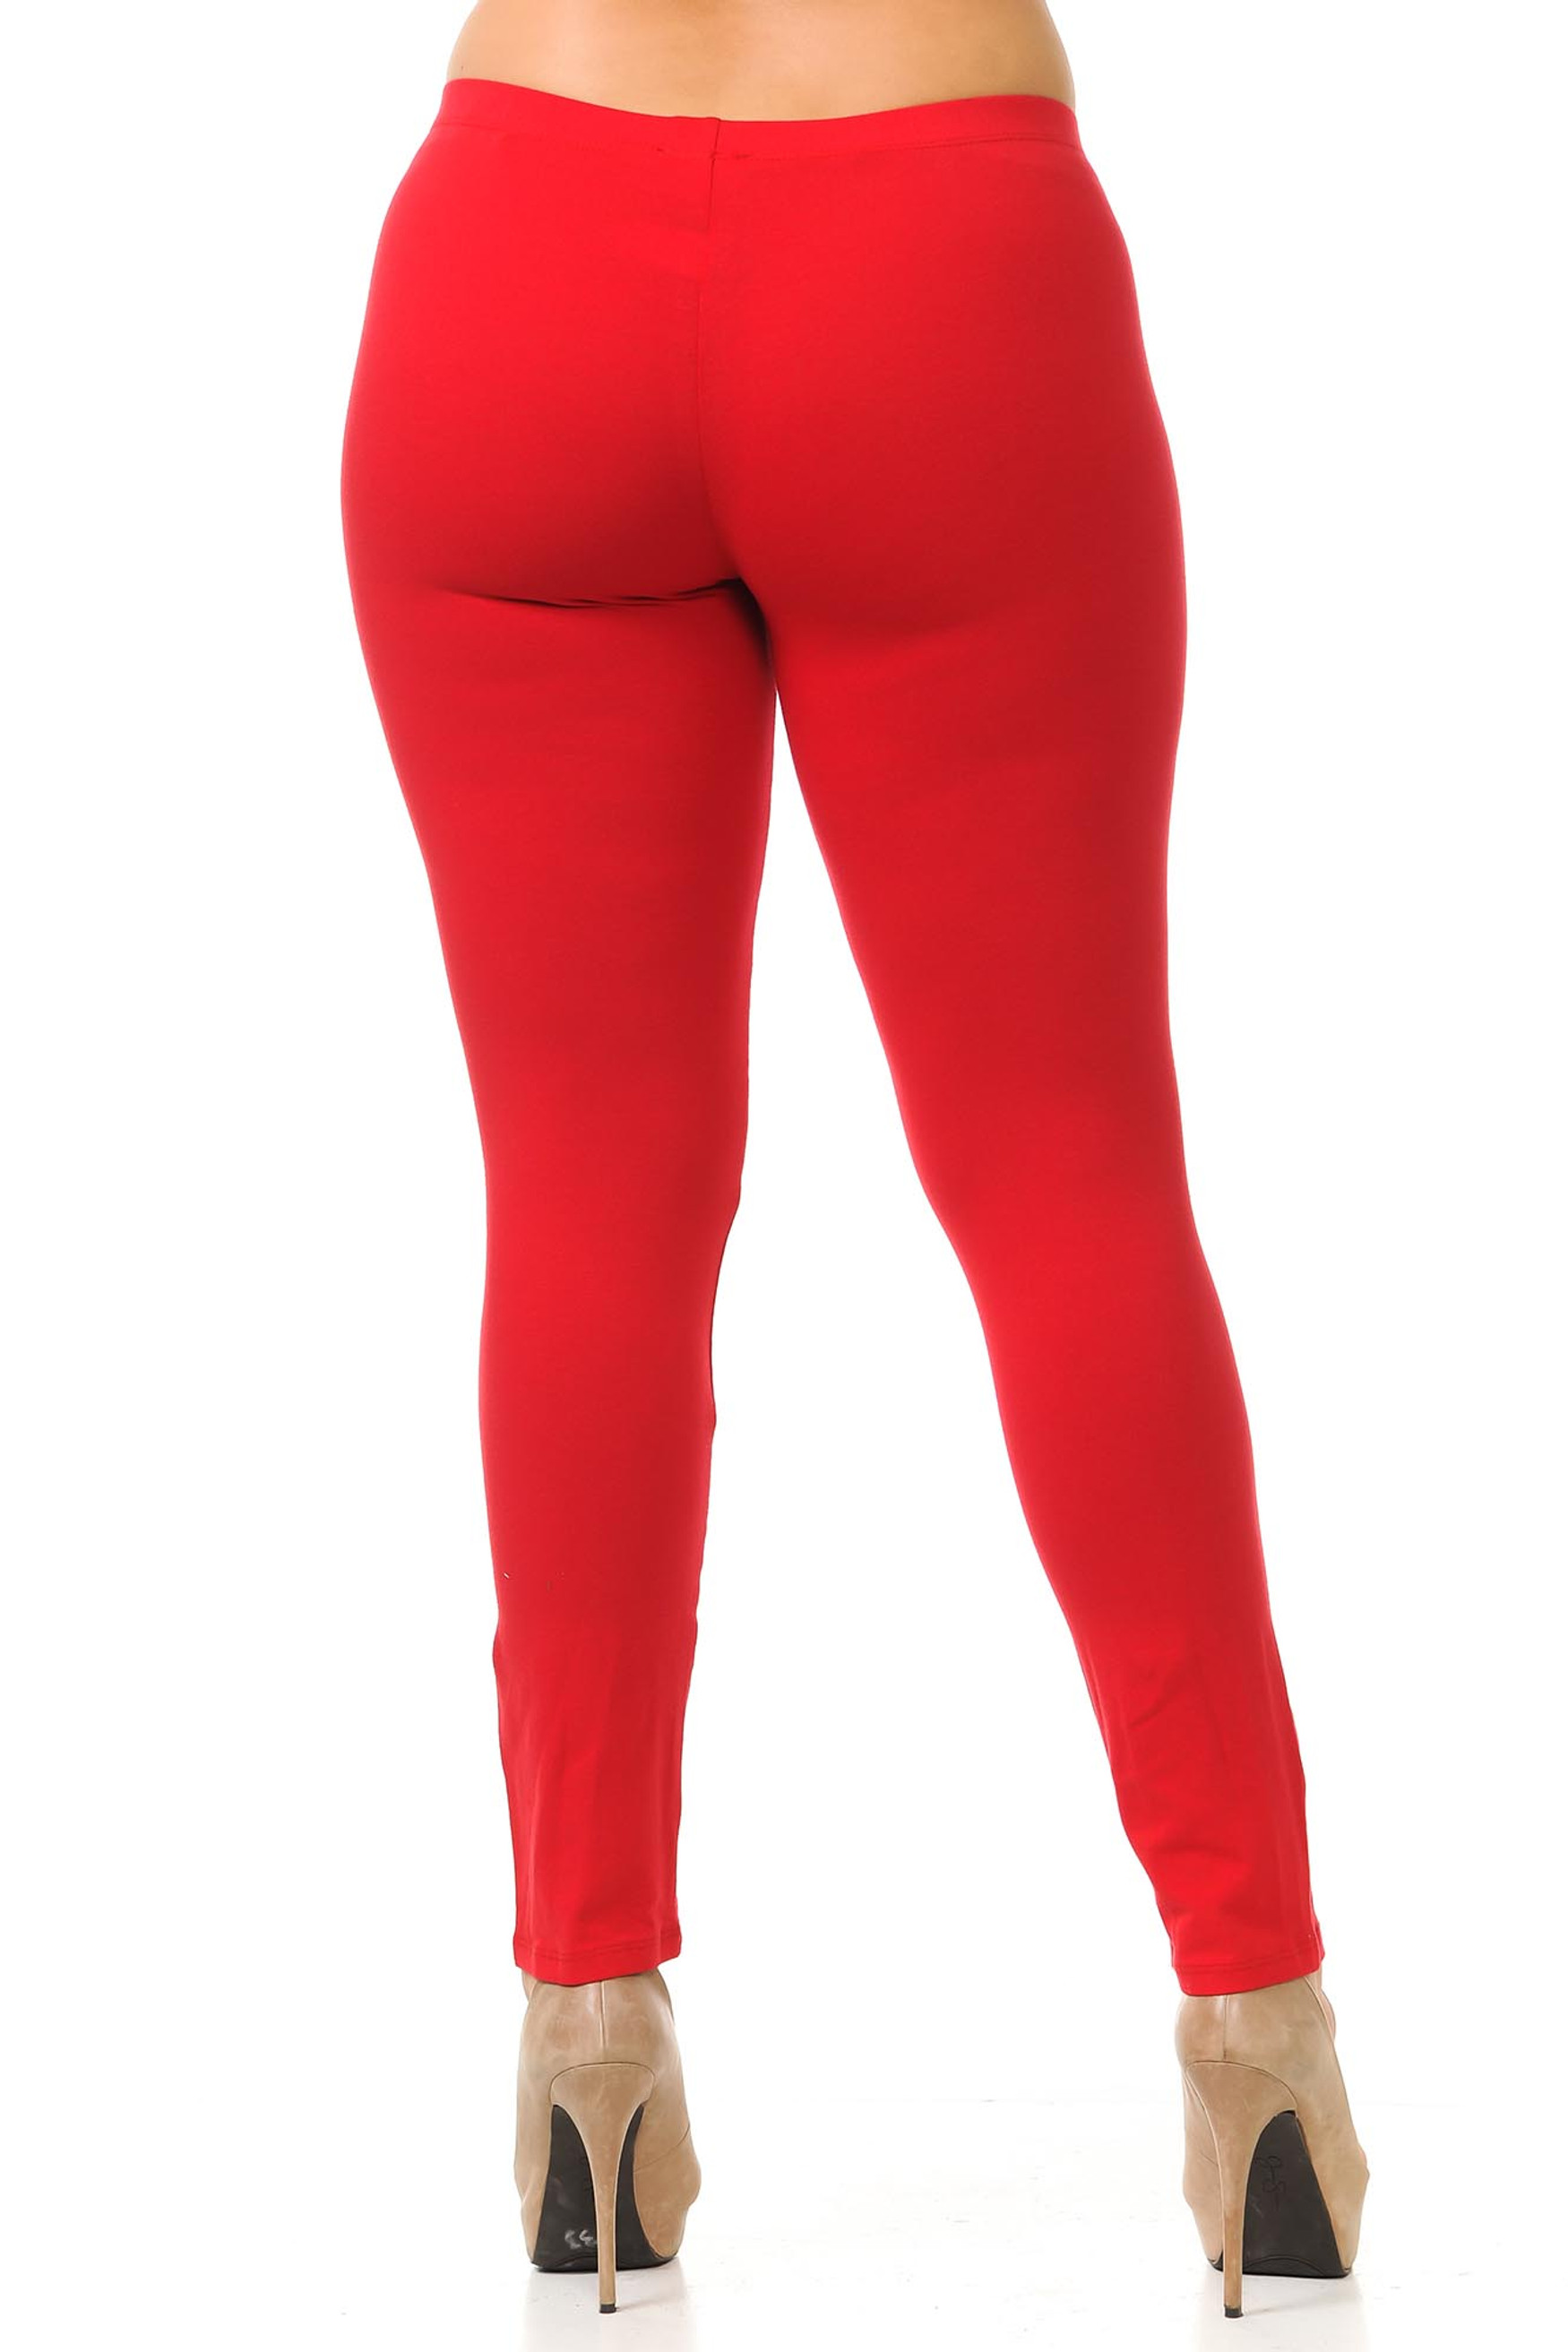 Rear view image of red USA Cotton Full Length Leggings - Plus Size